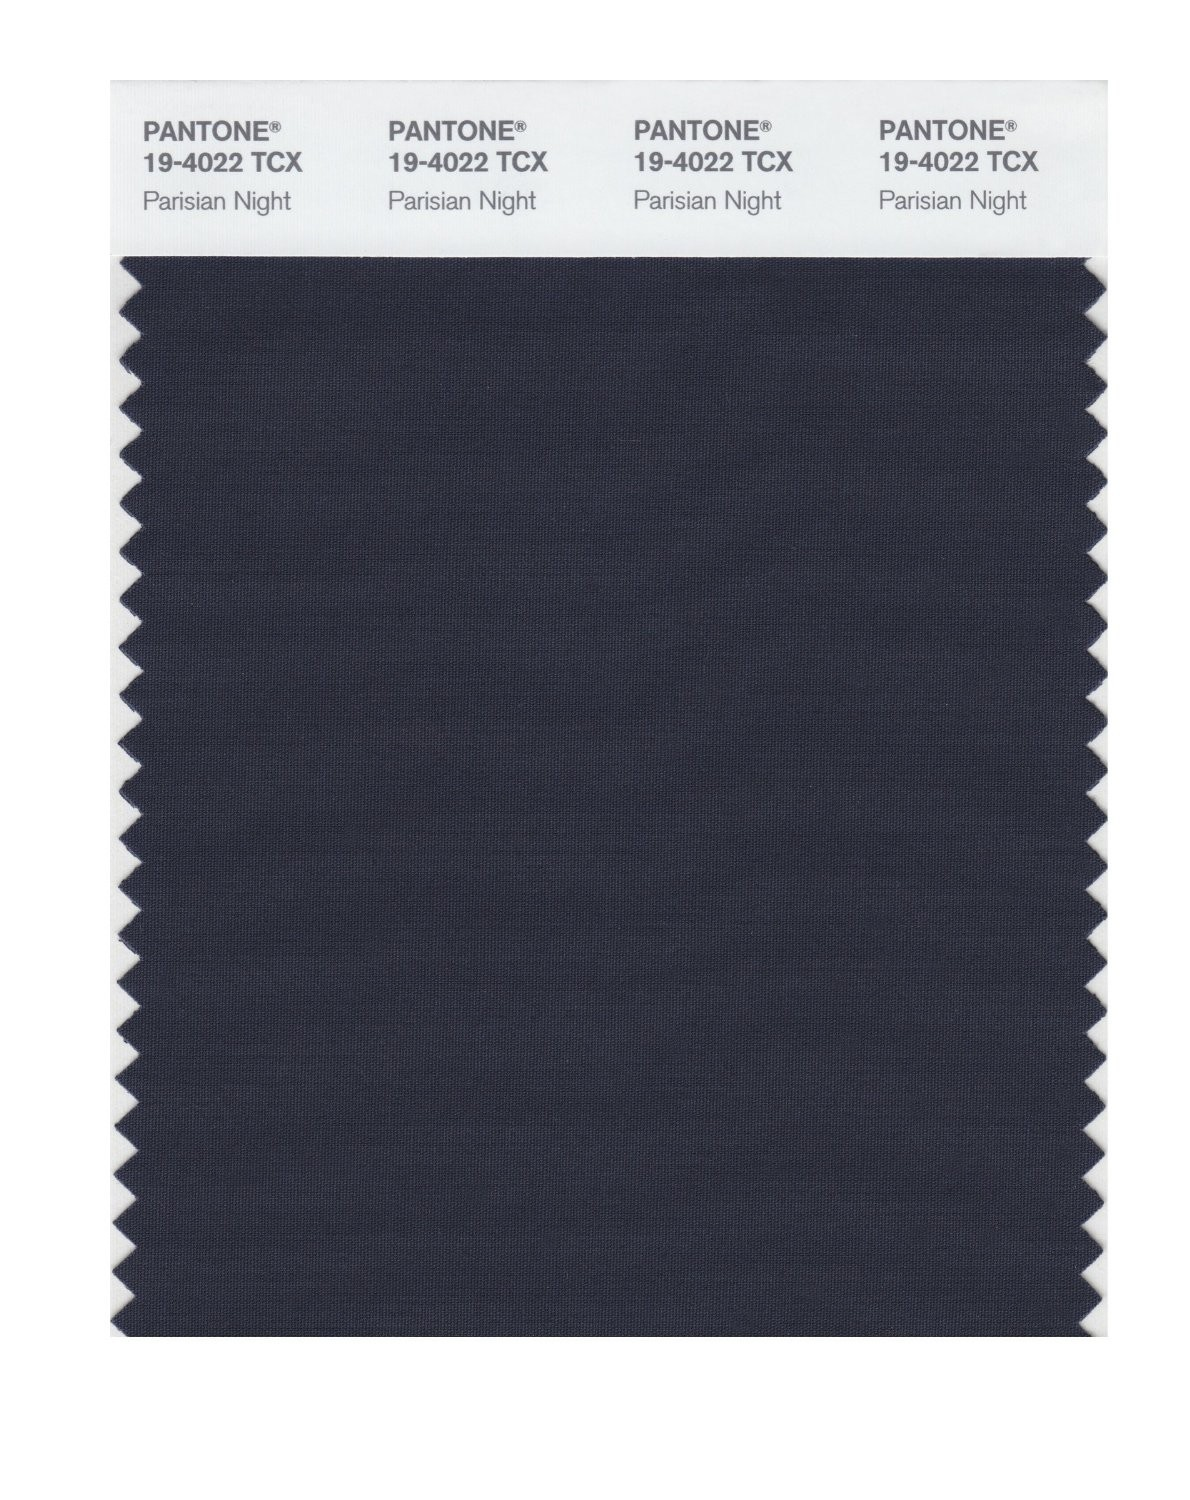 Pantone 19-4022 TCX Swatch Card Parisian Night